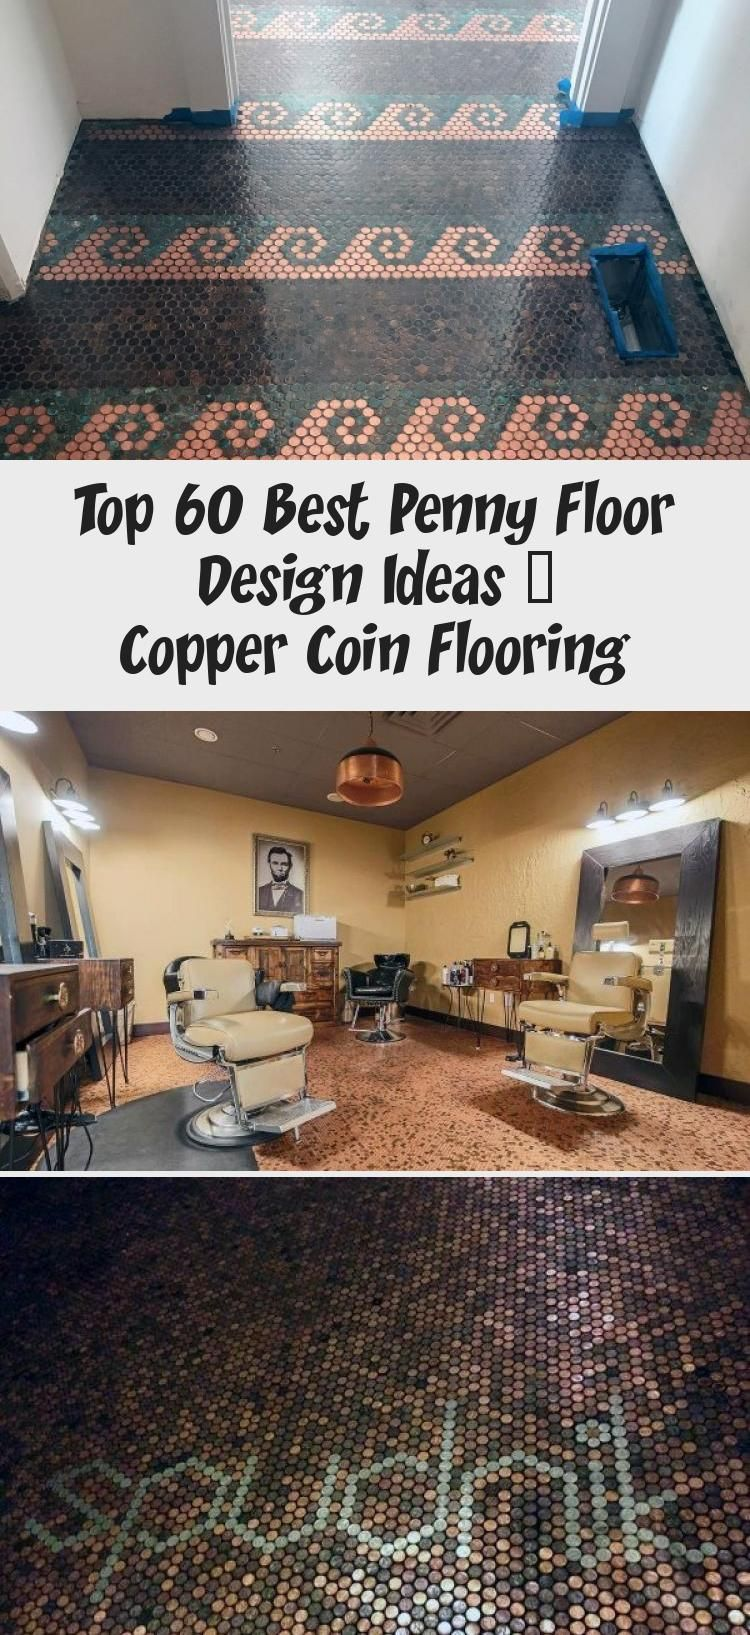 Top 60 Best Penny Floor Design Ideas Copper Coin Flooring Ktchn 2020